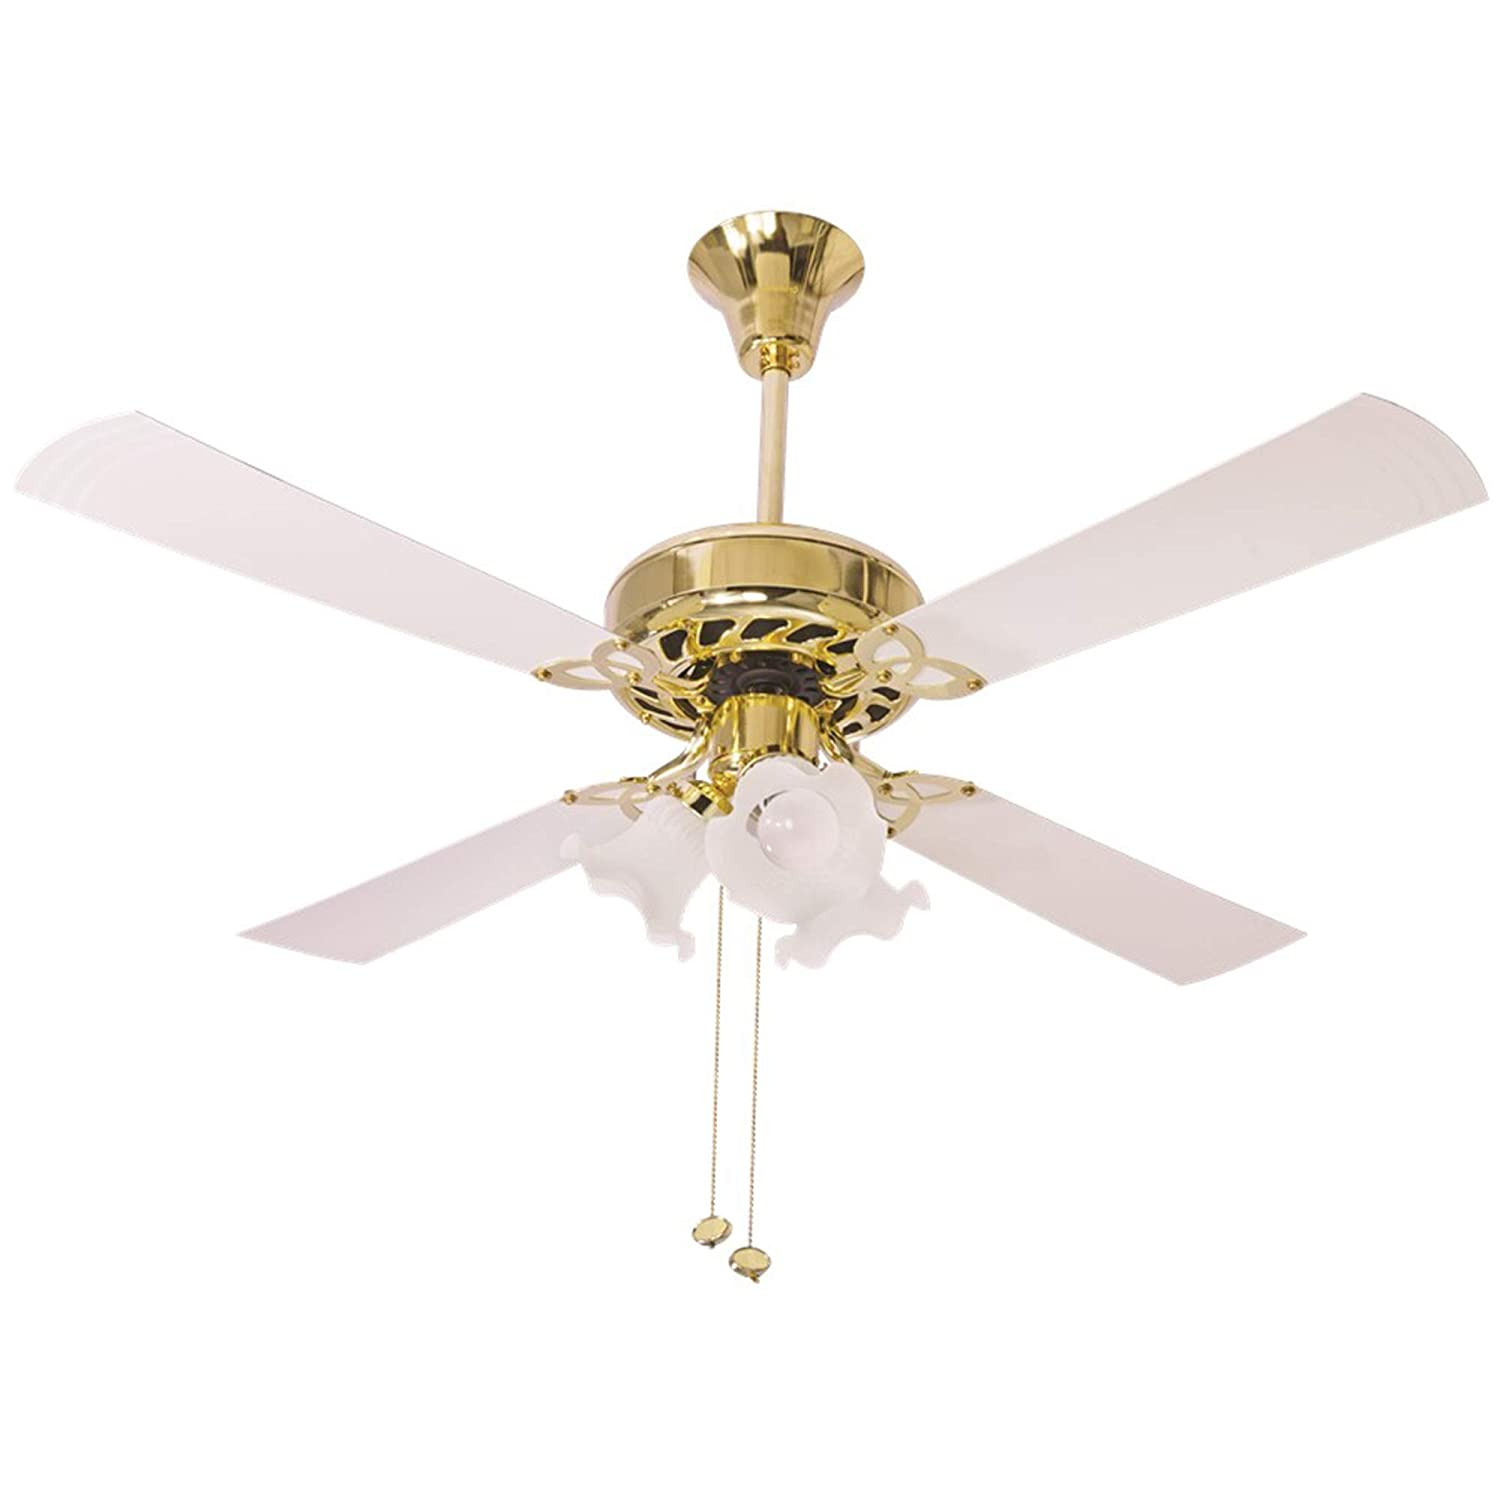 Crompton Metal Uranus 48-Inch Ceiling Fan With Decorative Lights